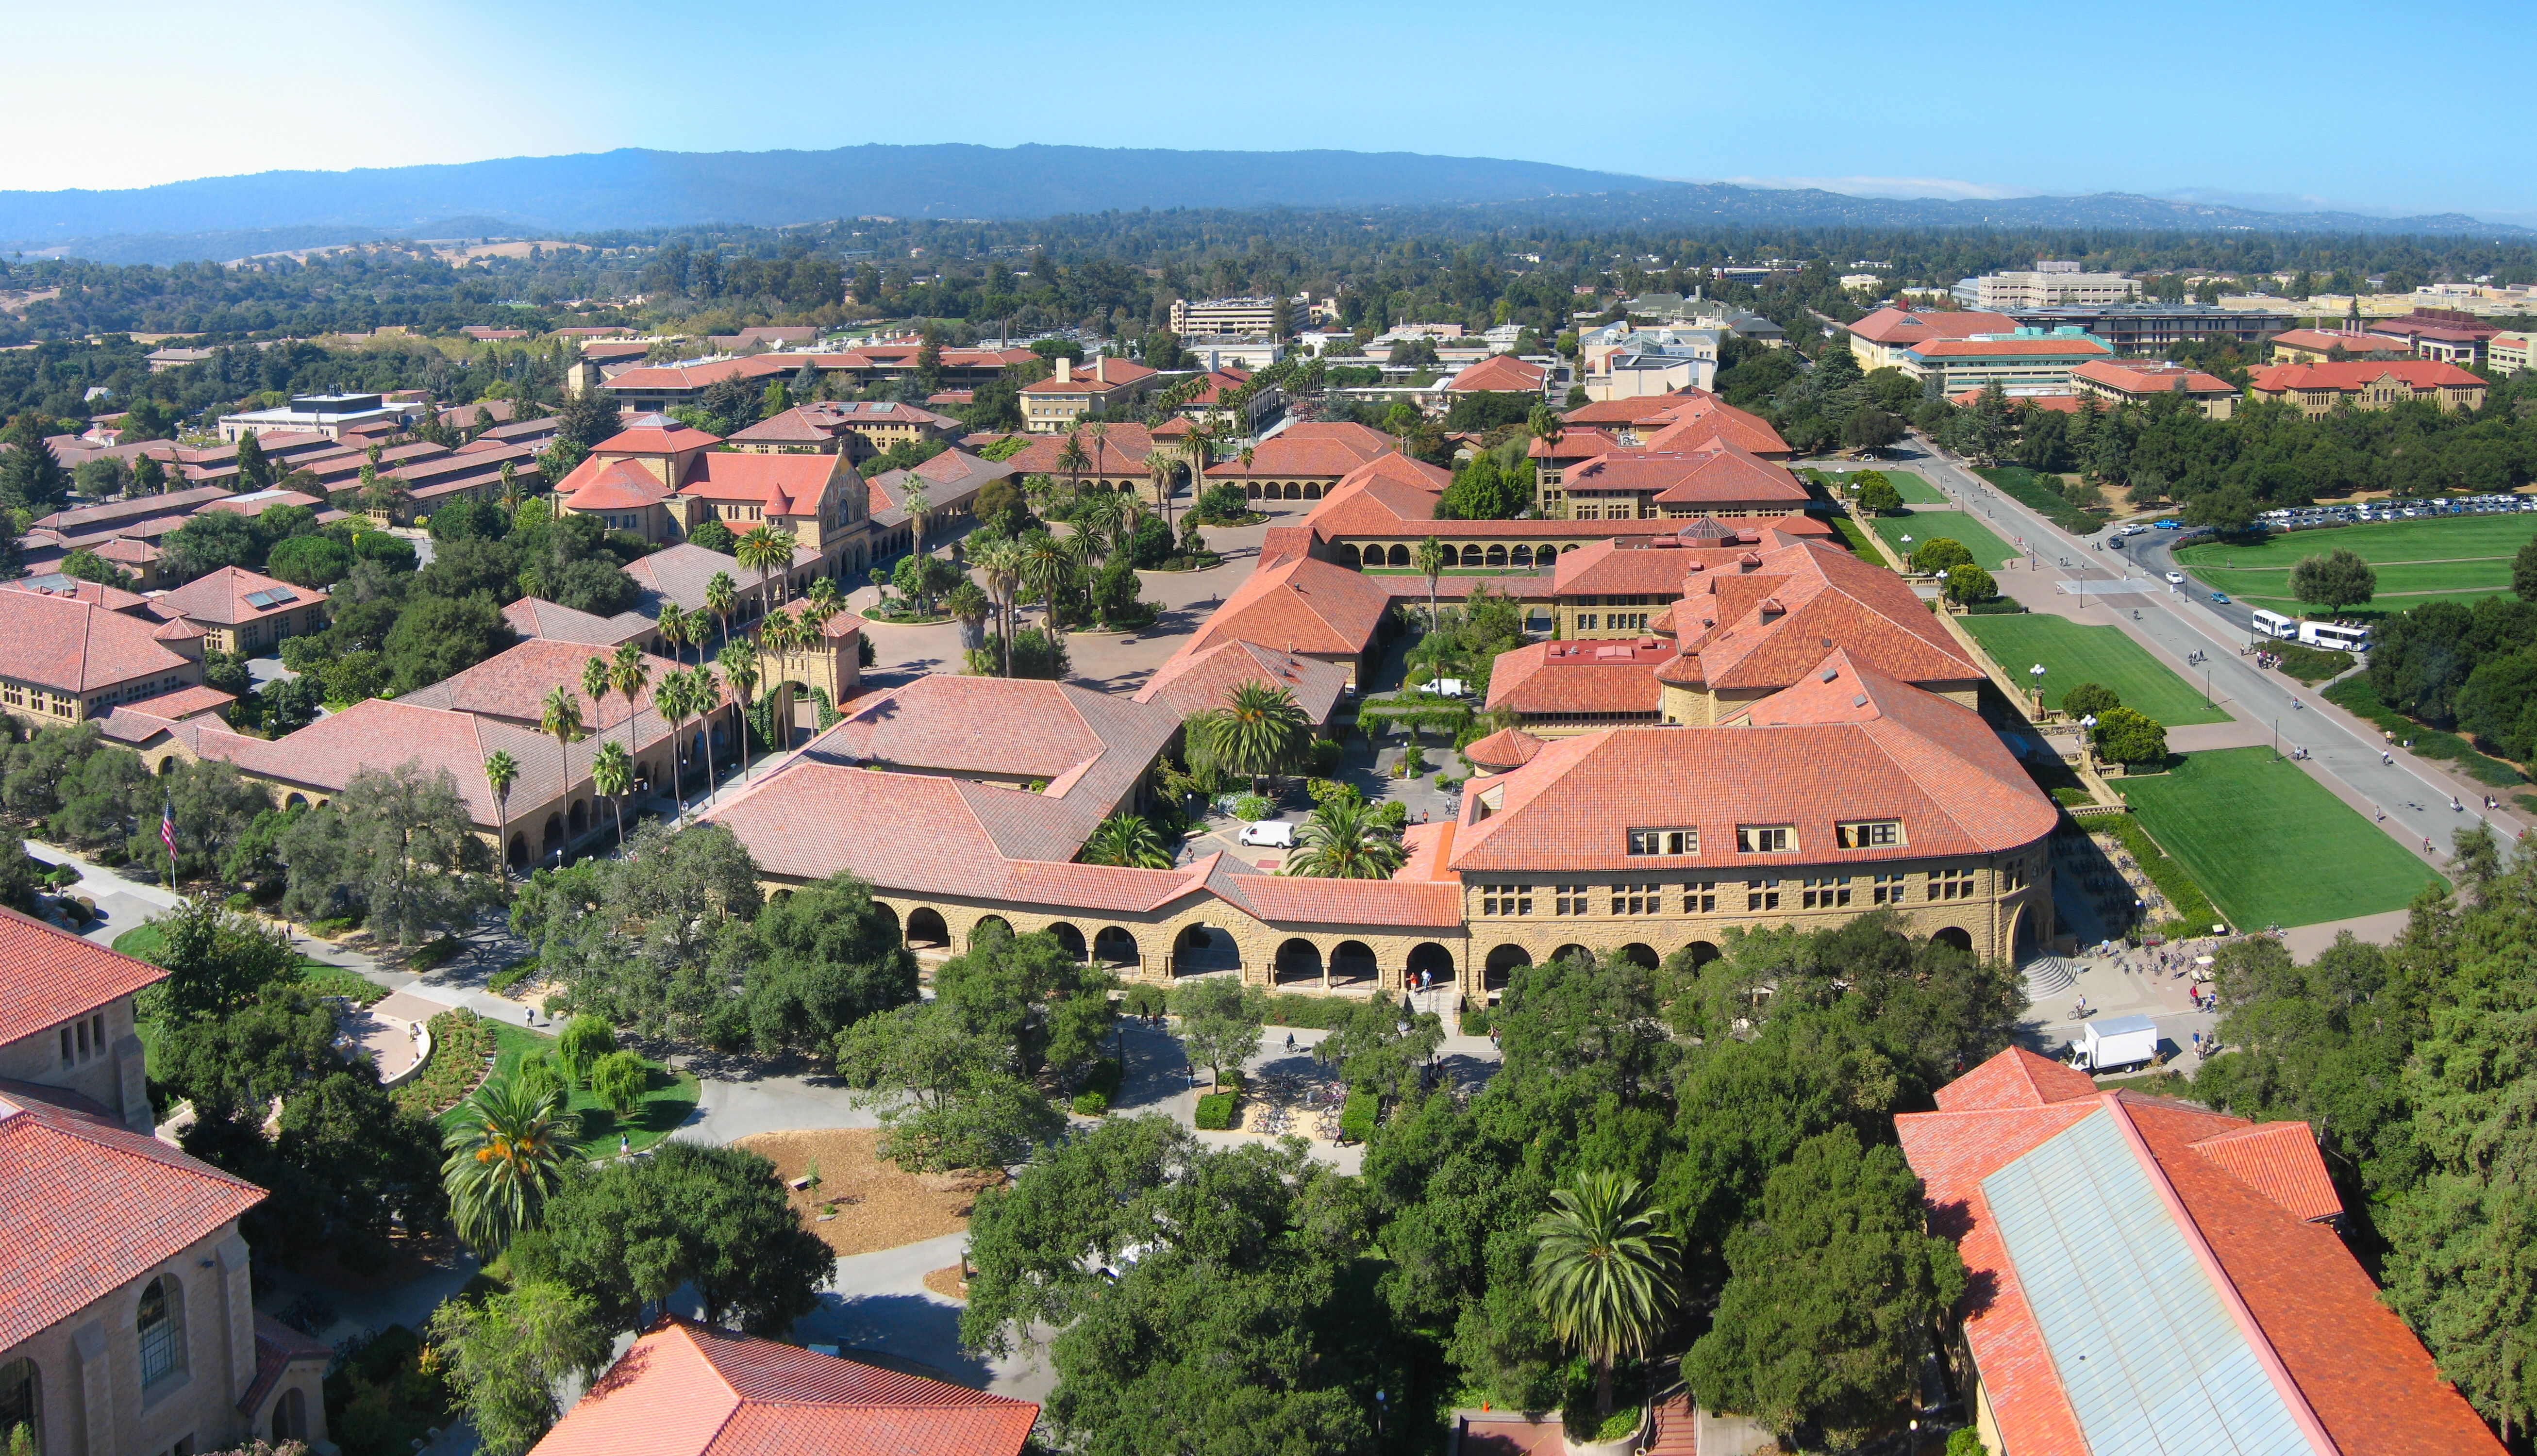 Stanford Health Care delivers the highest levels of care and compassion. SHC treats cancer, heart disease, brain disorders, primary care issues, and many more.